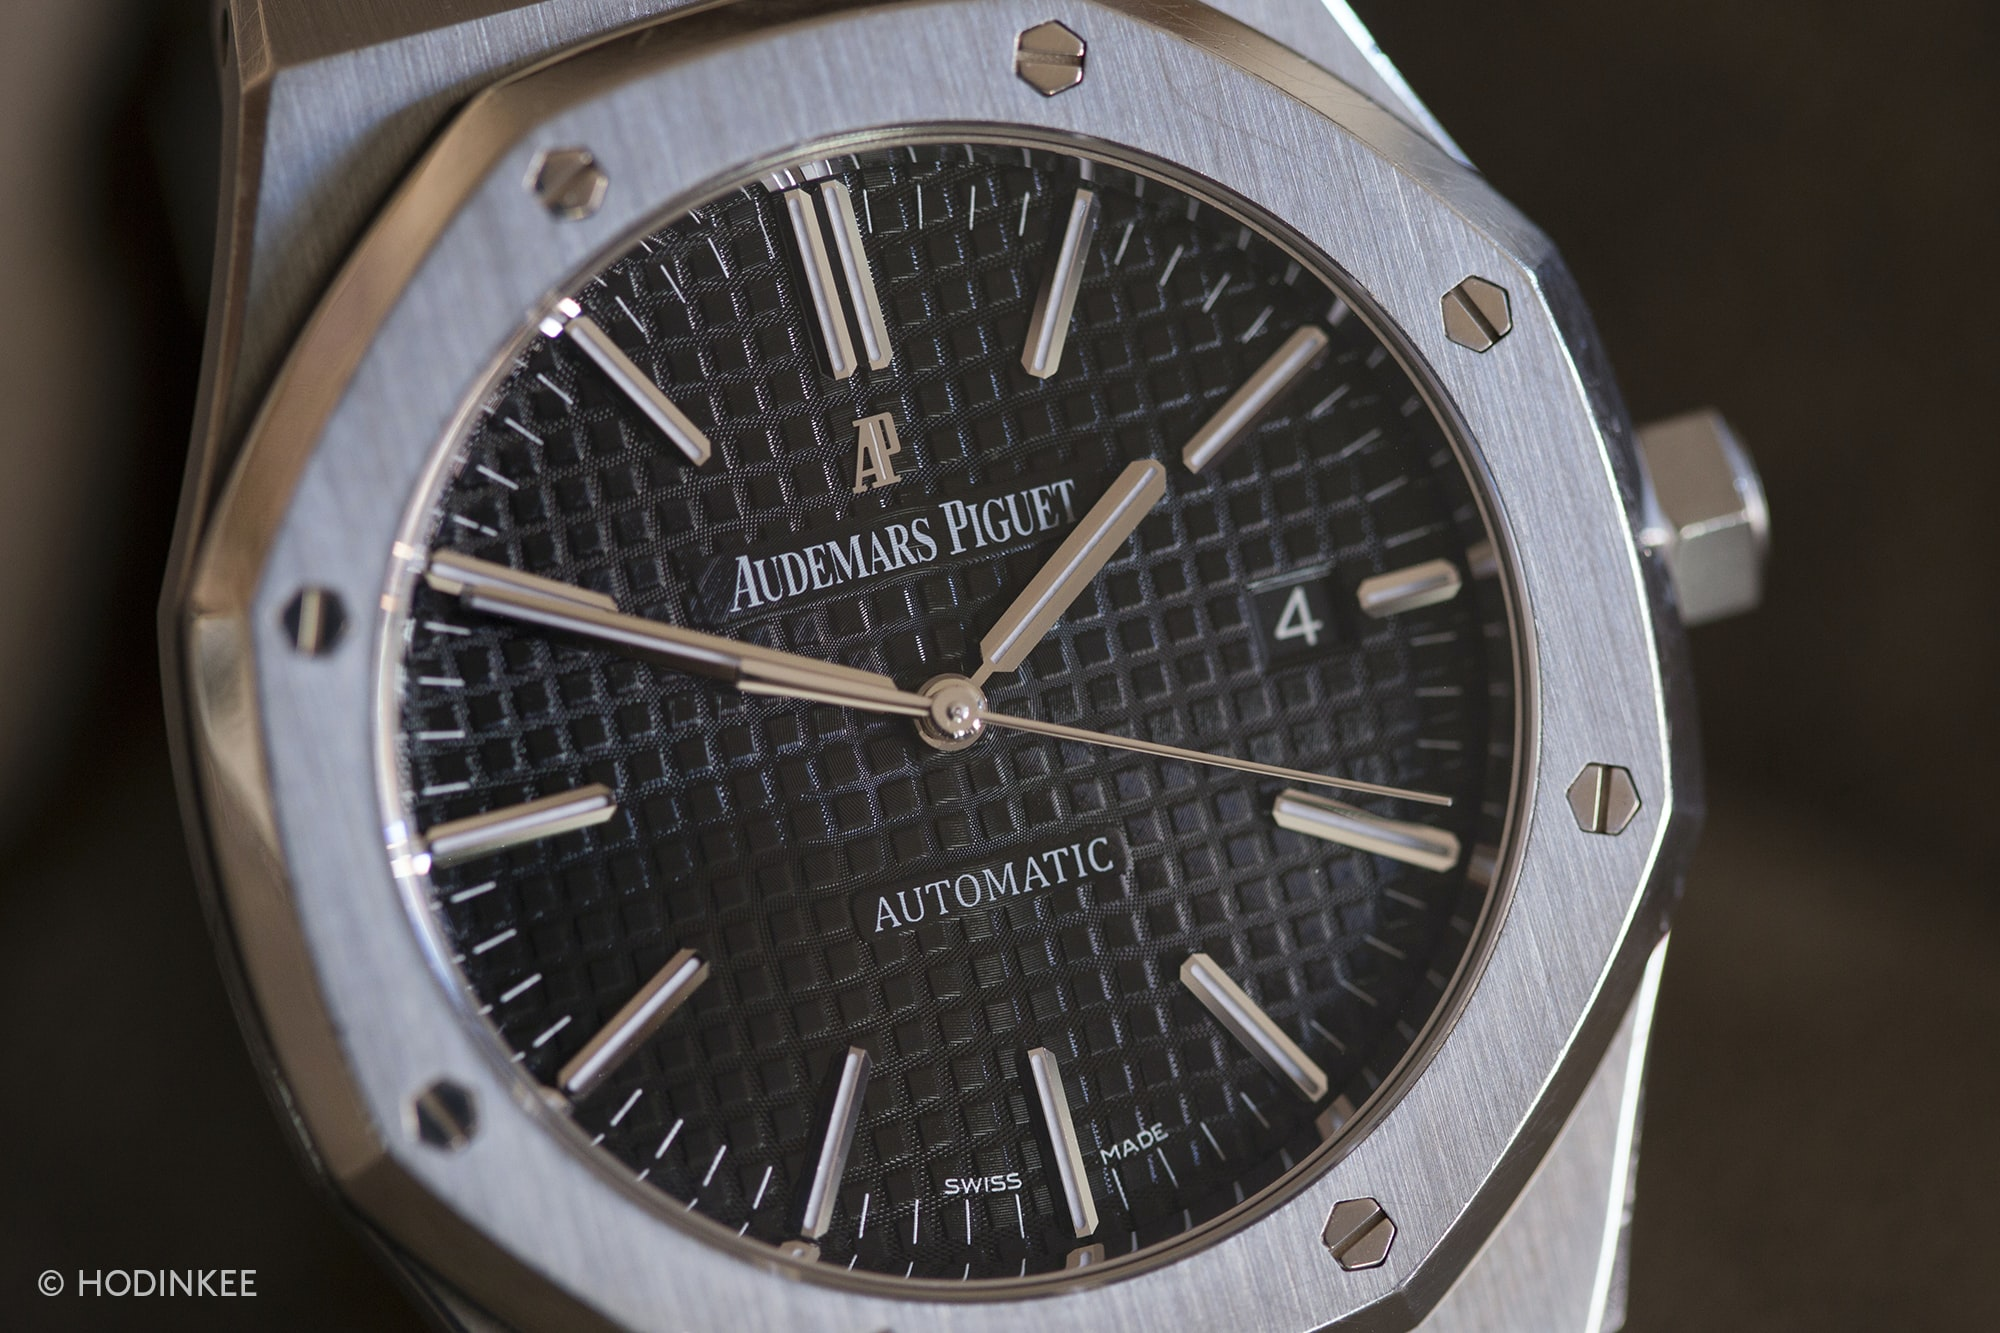 Three On Three: Comparing The Vacheron Constantin Overseas, The Piaget Polo S, And The Audemars Piguet Royal Oak 15400 Three On Three: Comparing The Vacheron Constantin Overseas, The Piaget Polo S, And The Audemars Piguet Royal Oak 15400 20015996 copy